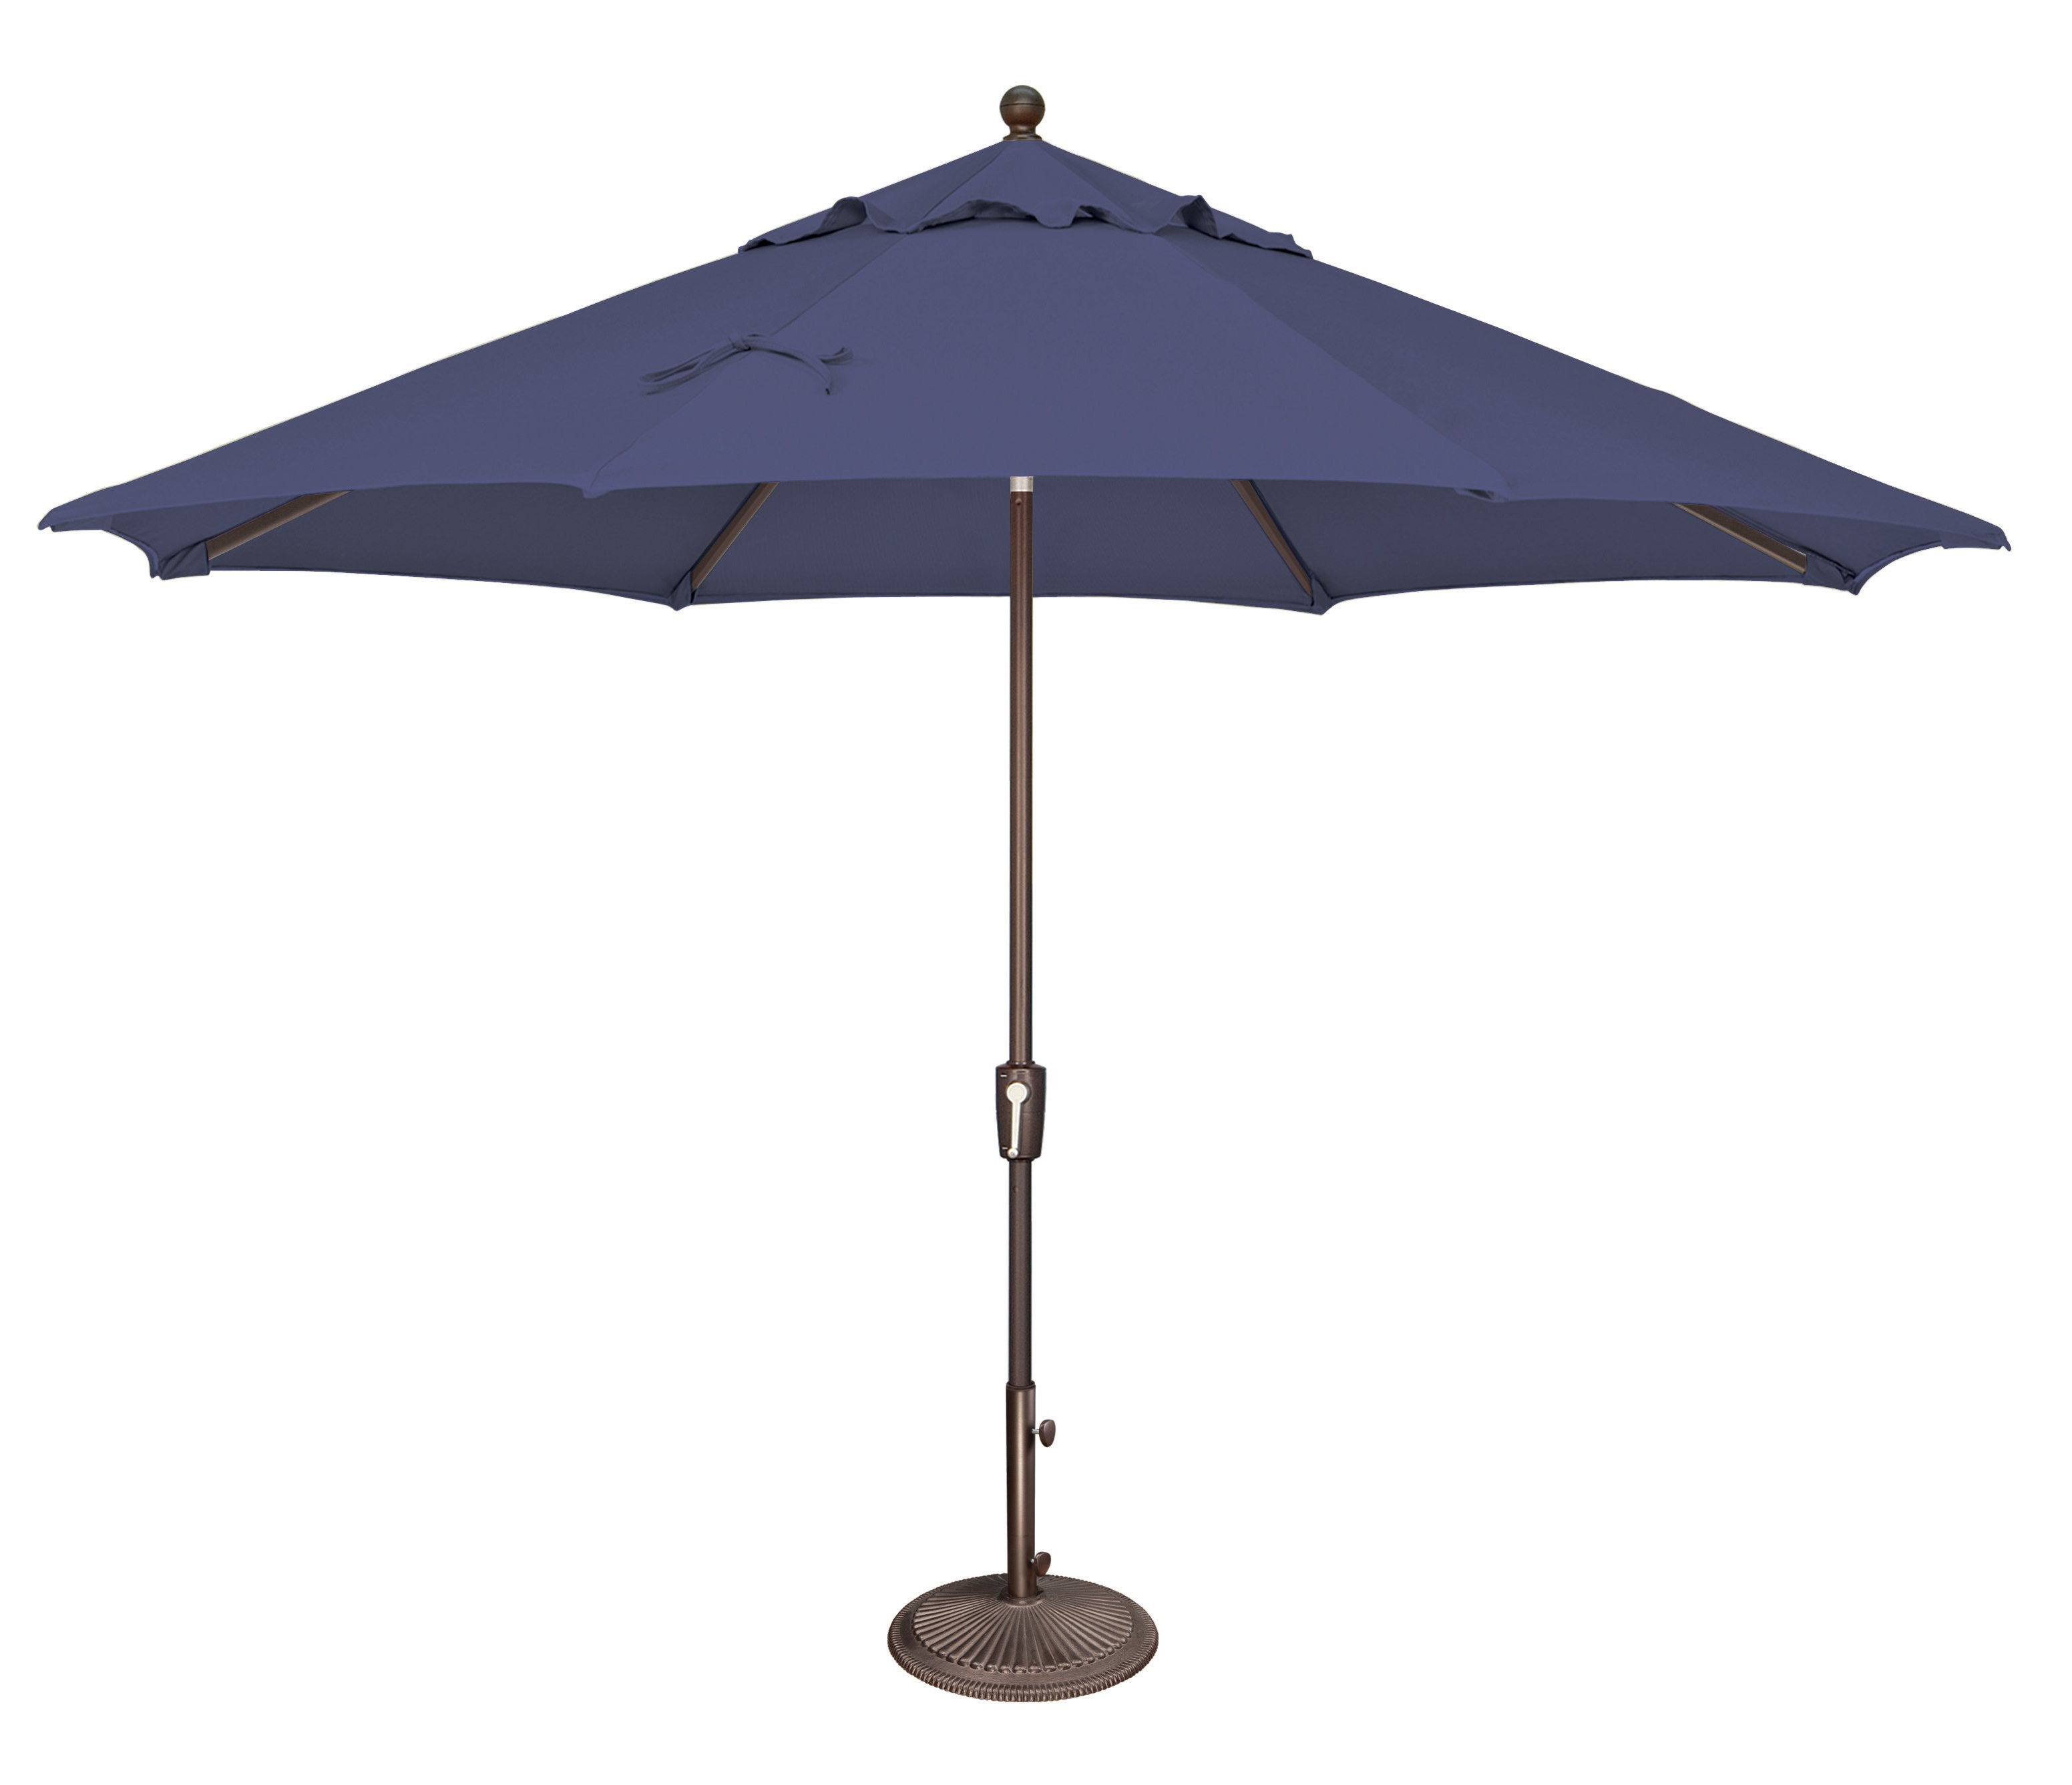 Launceston 11' Market Umbrella With Well Known Wallach Market Sunbrella Umbrellas (View 16 of 20)